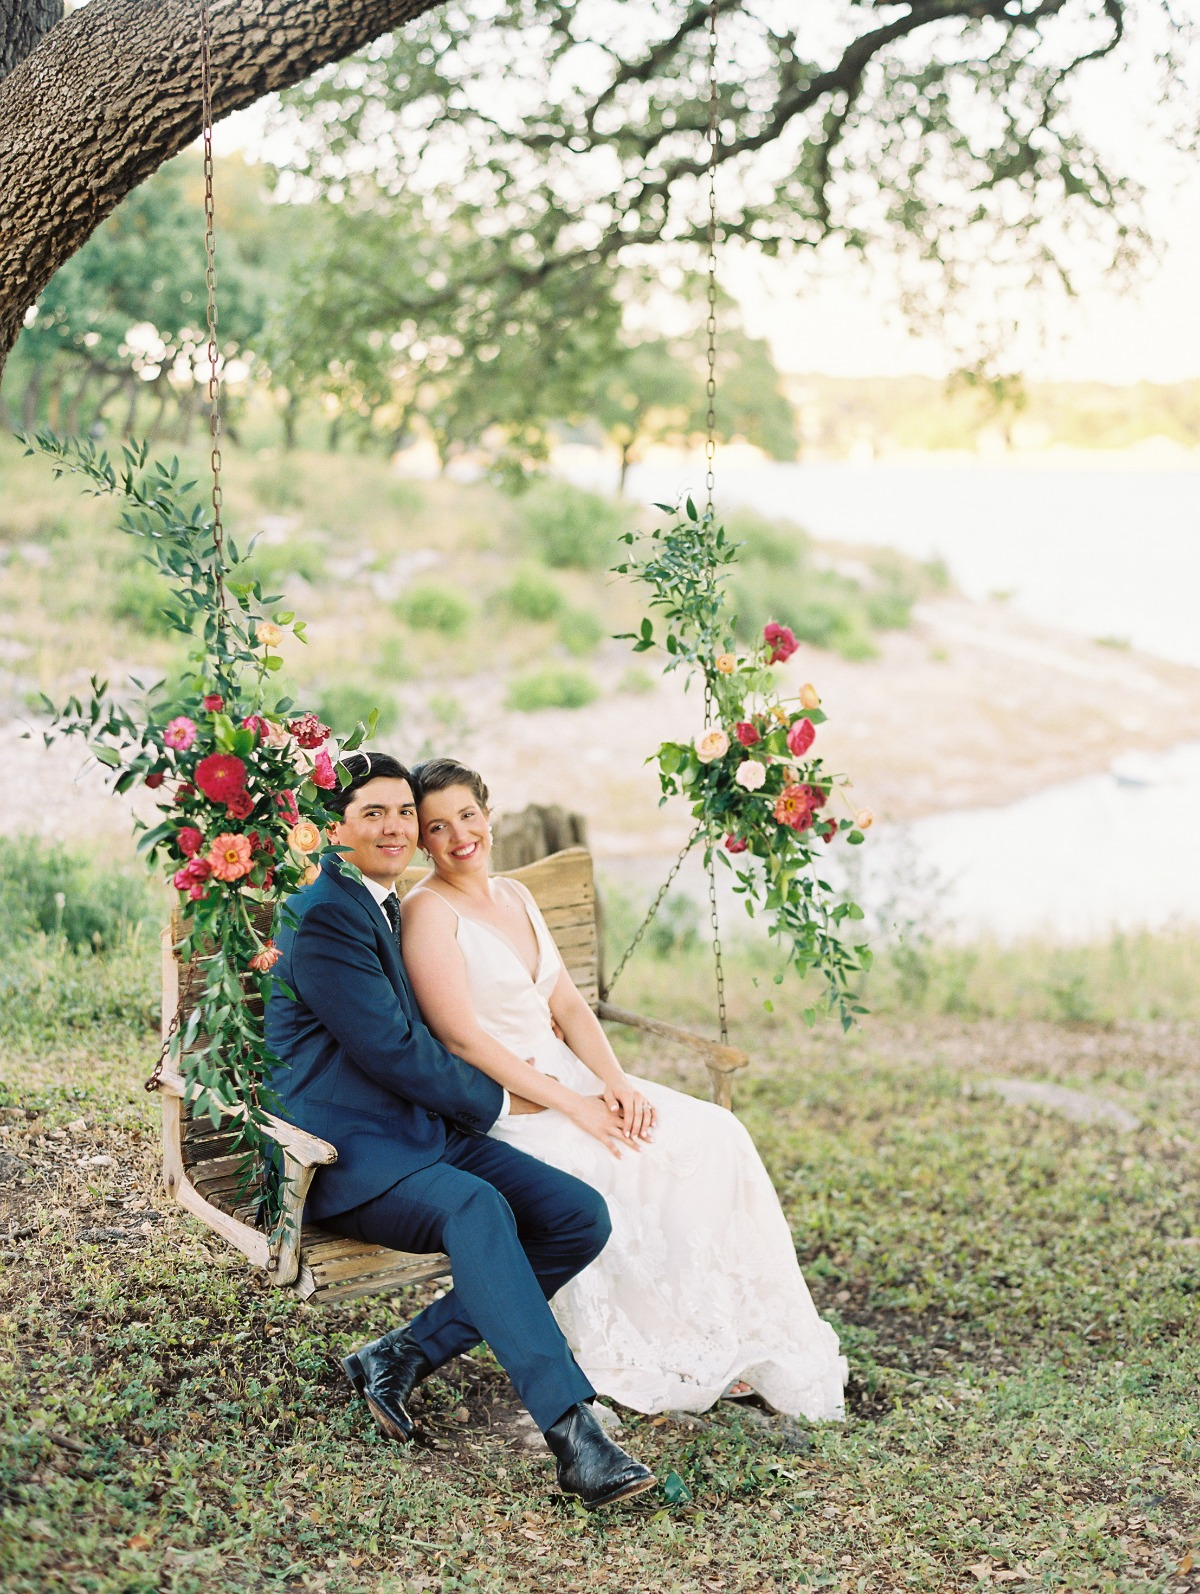 The Texas Couple Kept Their Wedding Date and Nailed Plan B